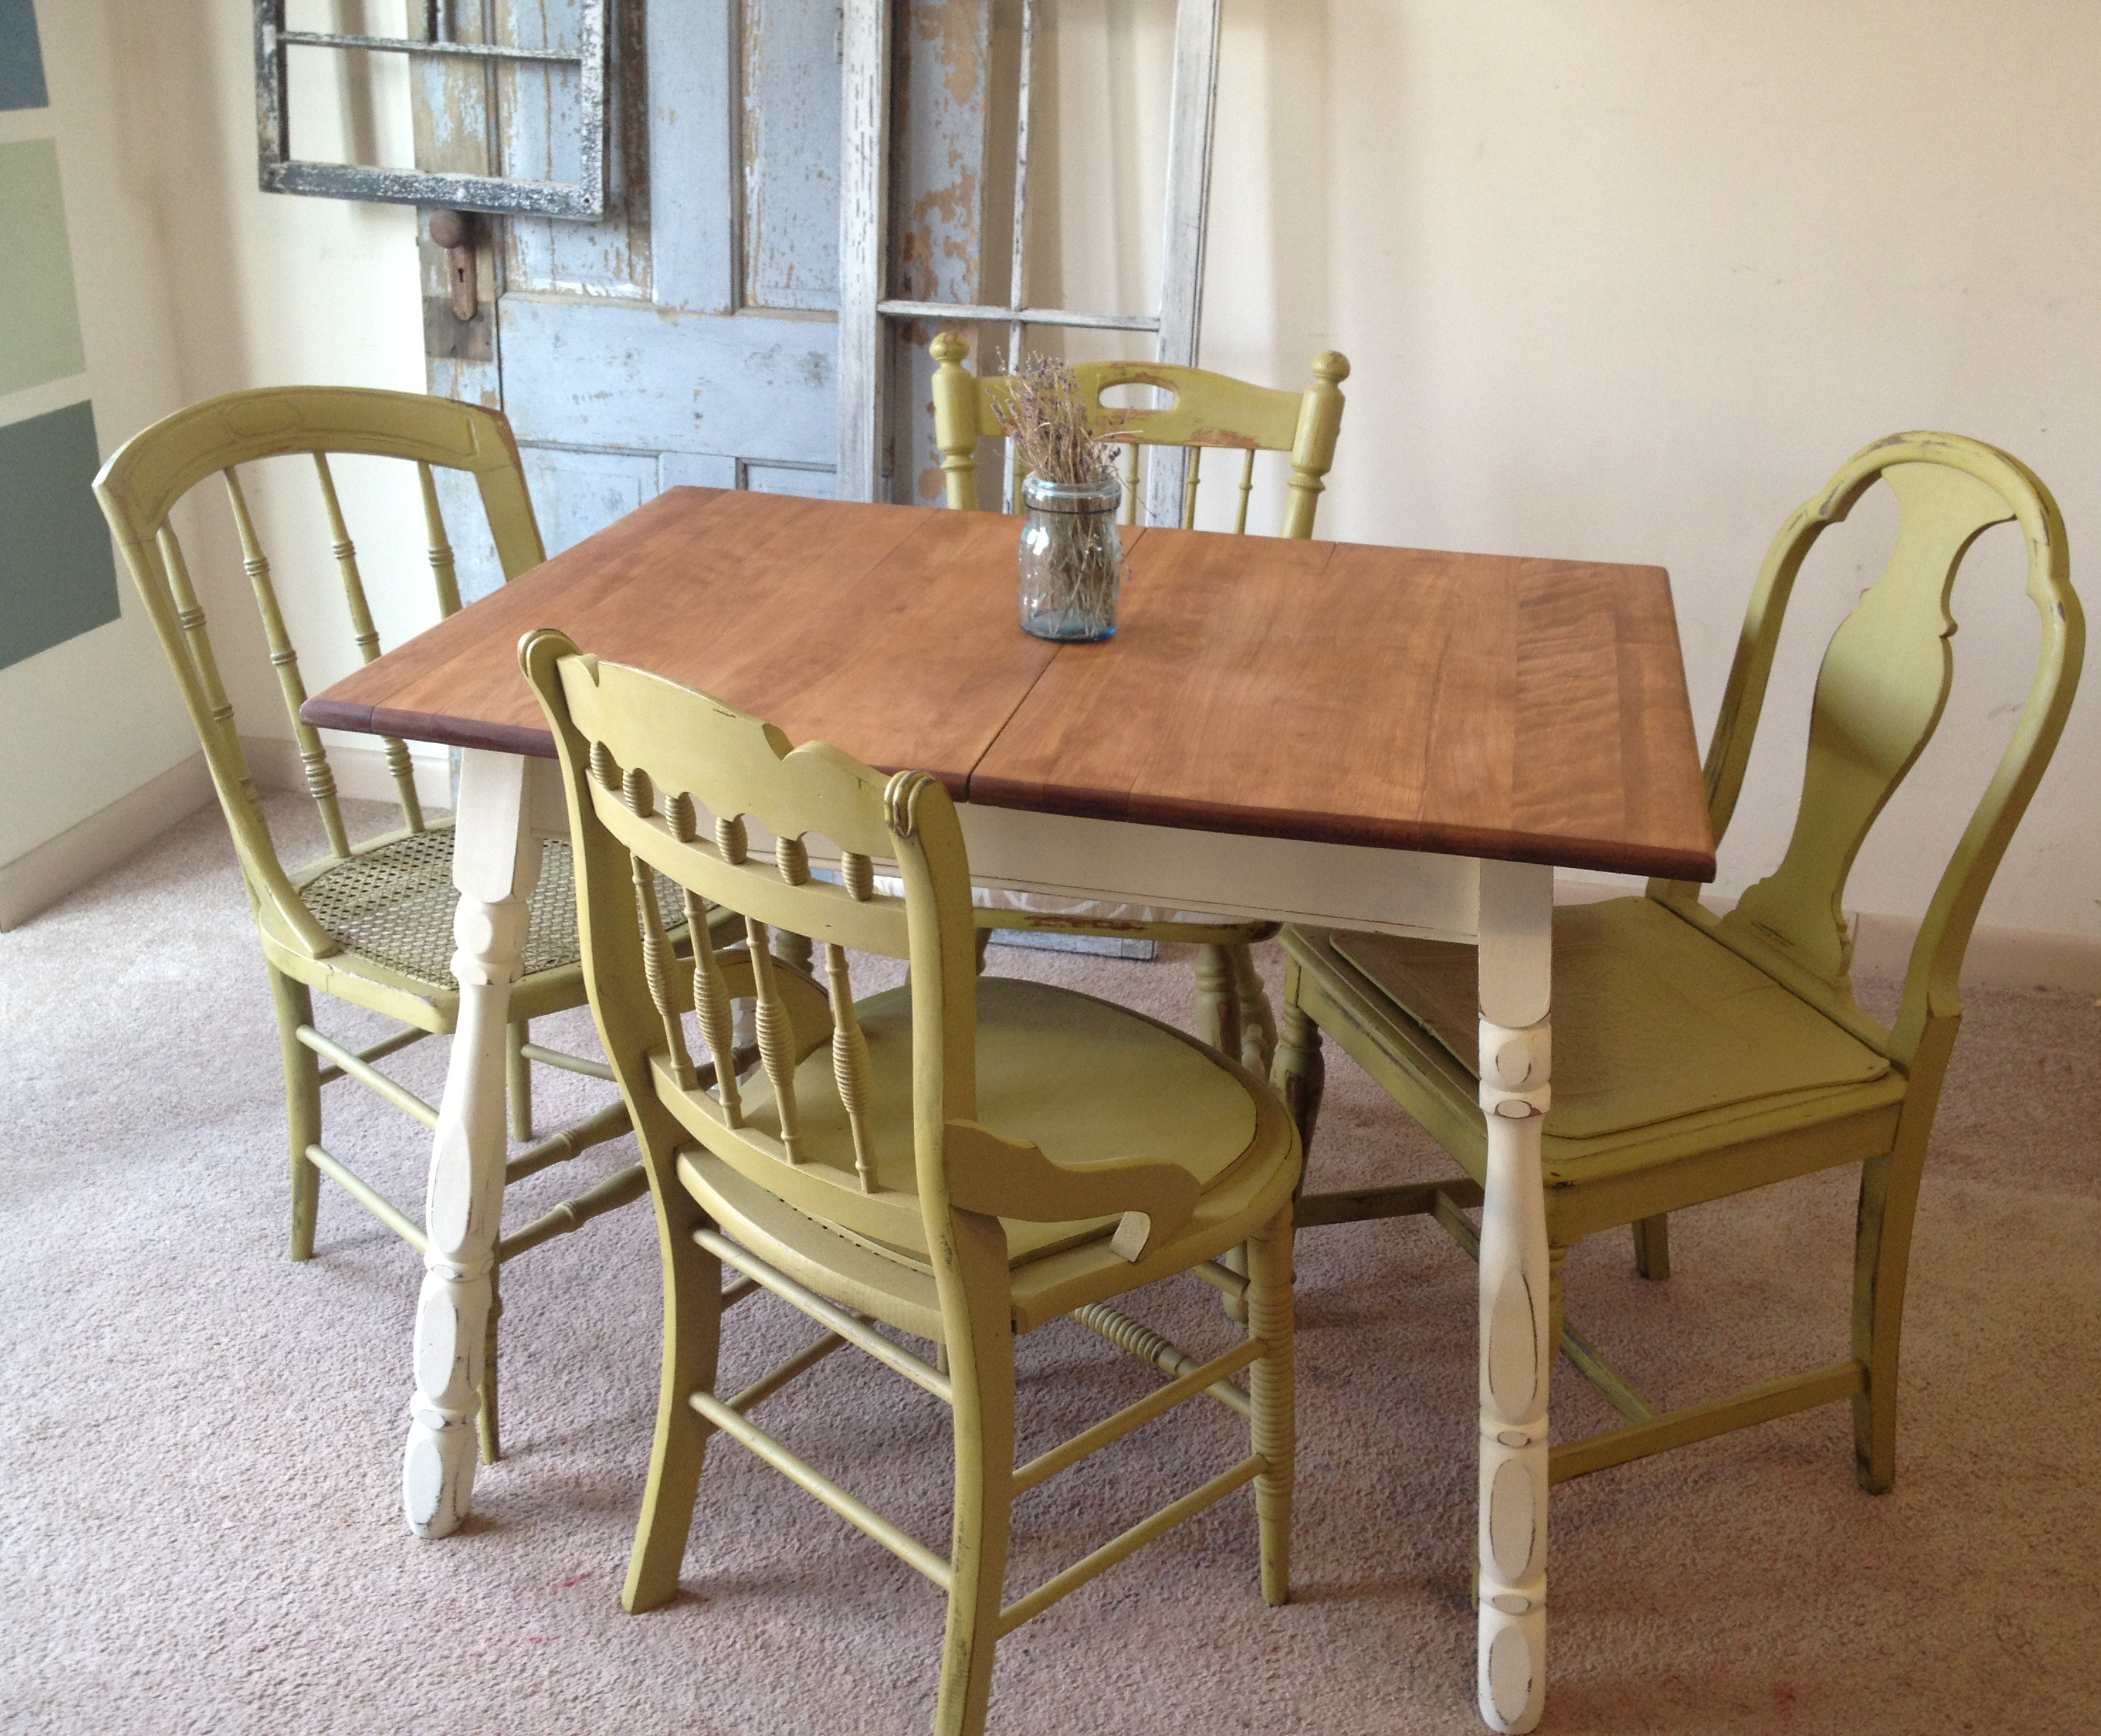 Small round kitchen table and chairs photo - 1